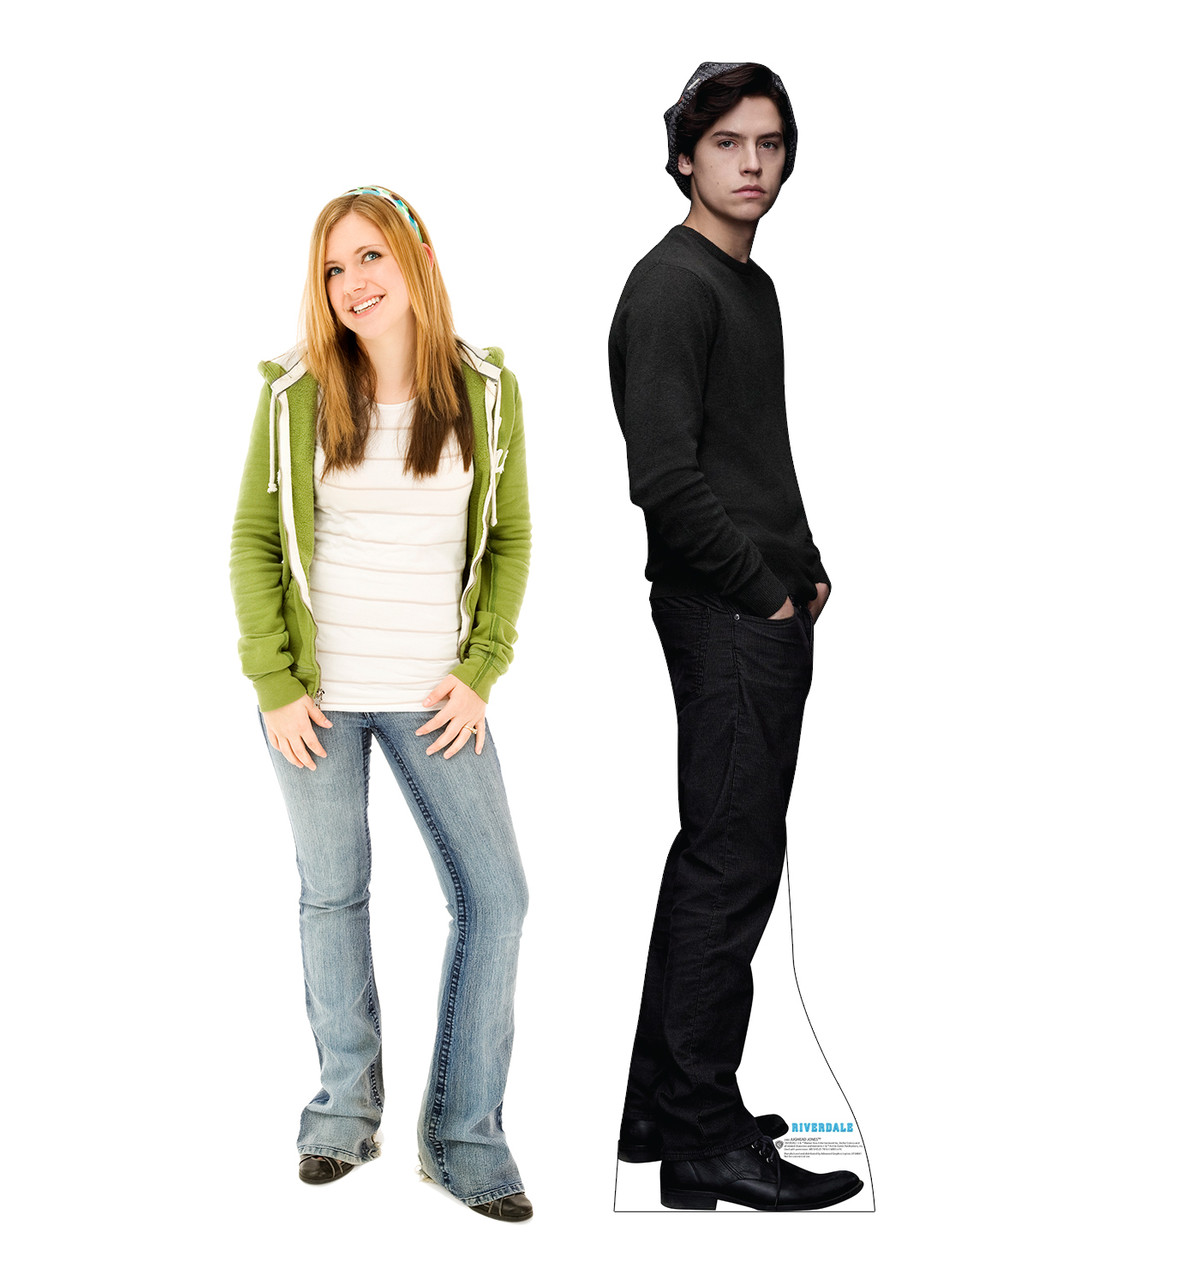 Life-size cardboard standee of Jughead Jones from the TV Series Riverdale with model.